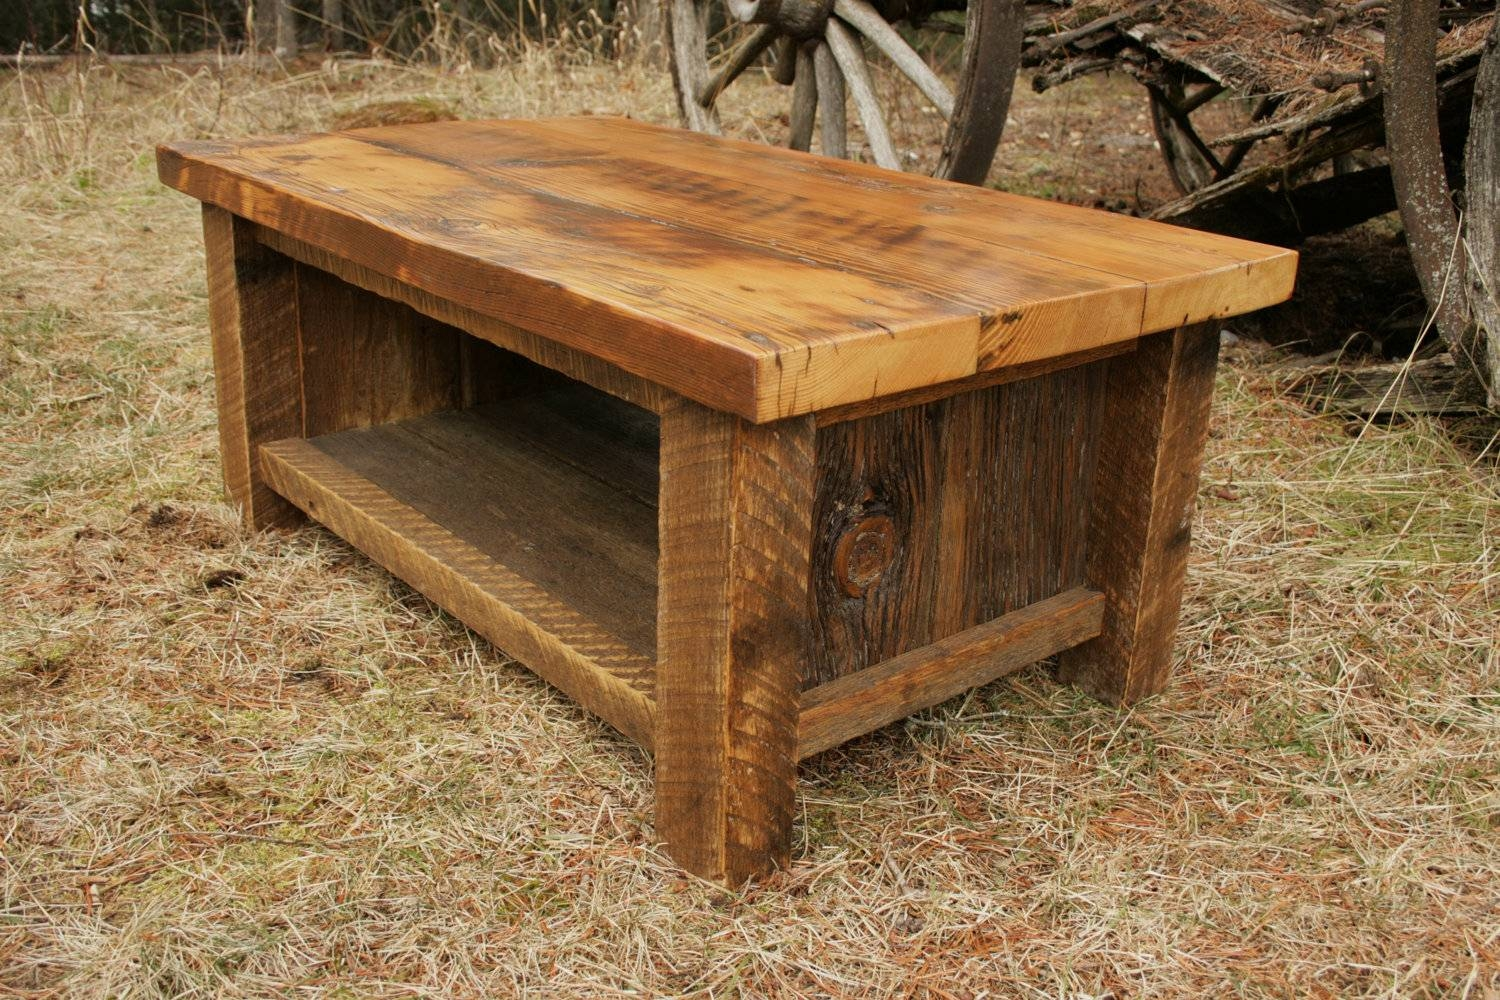 Sofa Table Design: Barnwood Sofa Table Astounding Design Walnut in Barnwood Sofa Tables (Image 14 of 15)